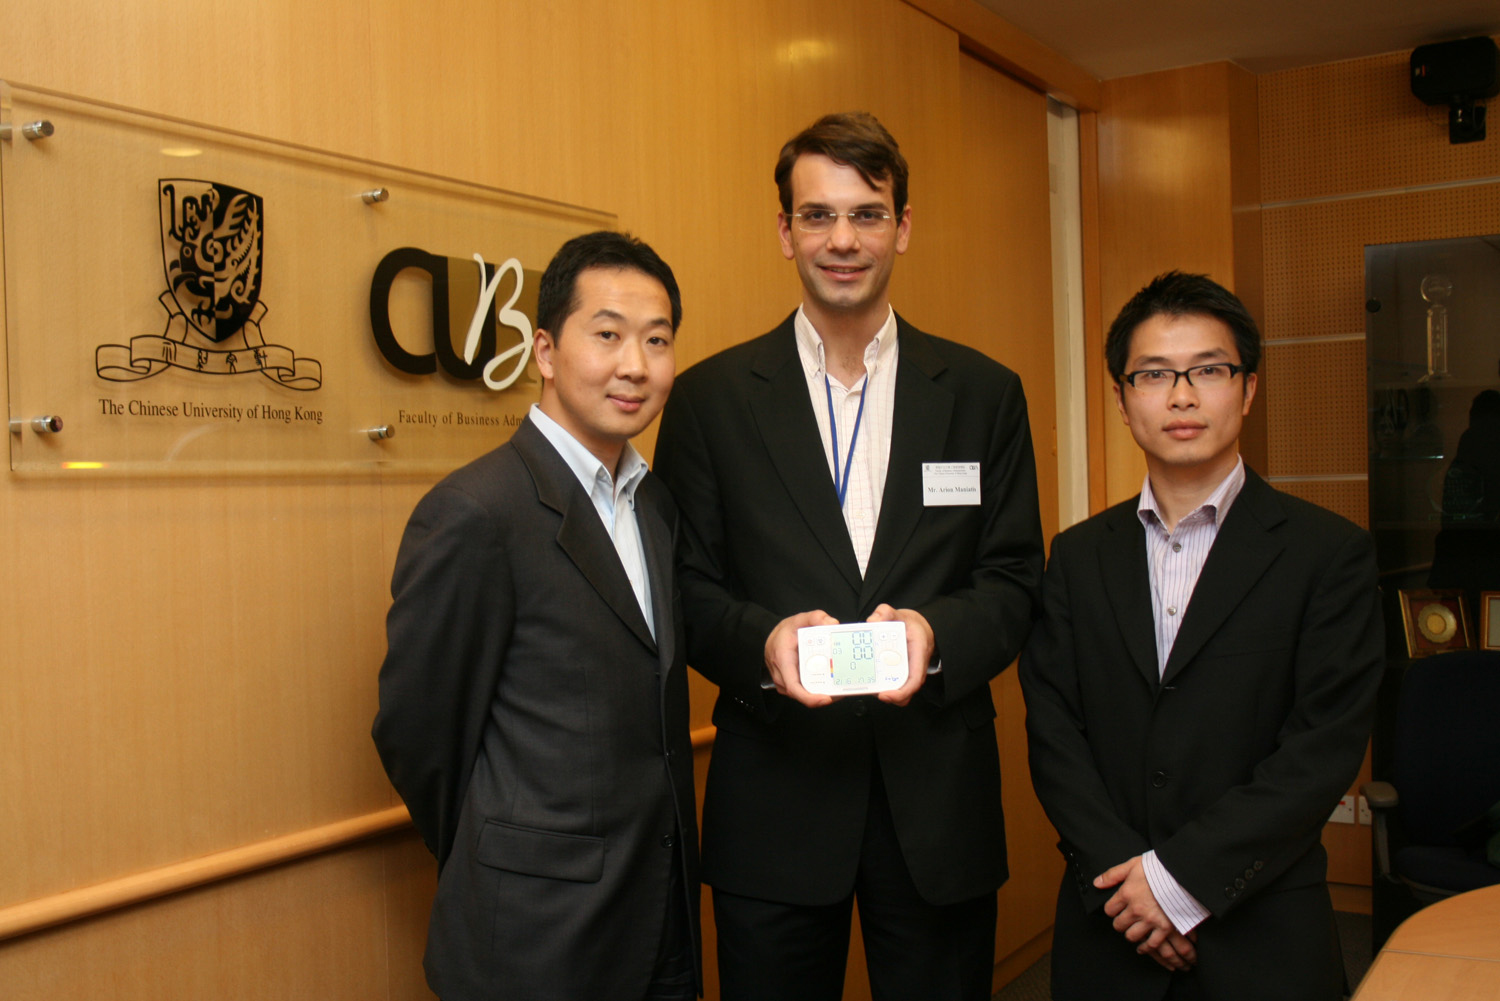 from left - Tony Liu, Arion Maniatis and Yip Chi Youn Terry from Colisa Limited.